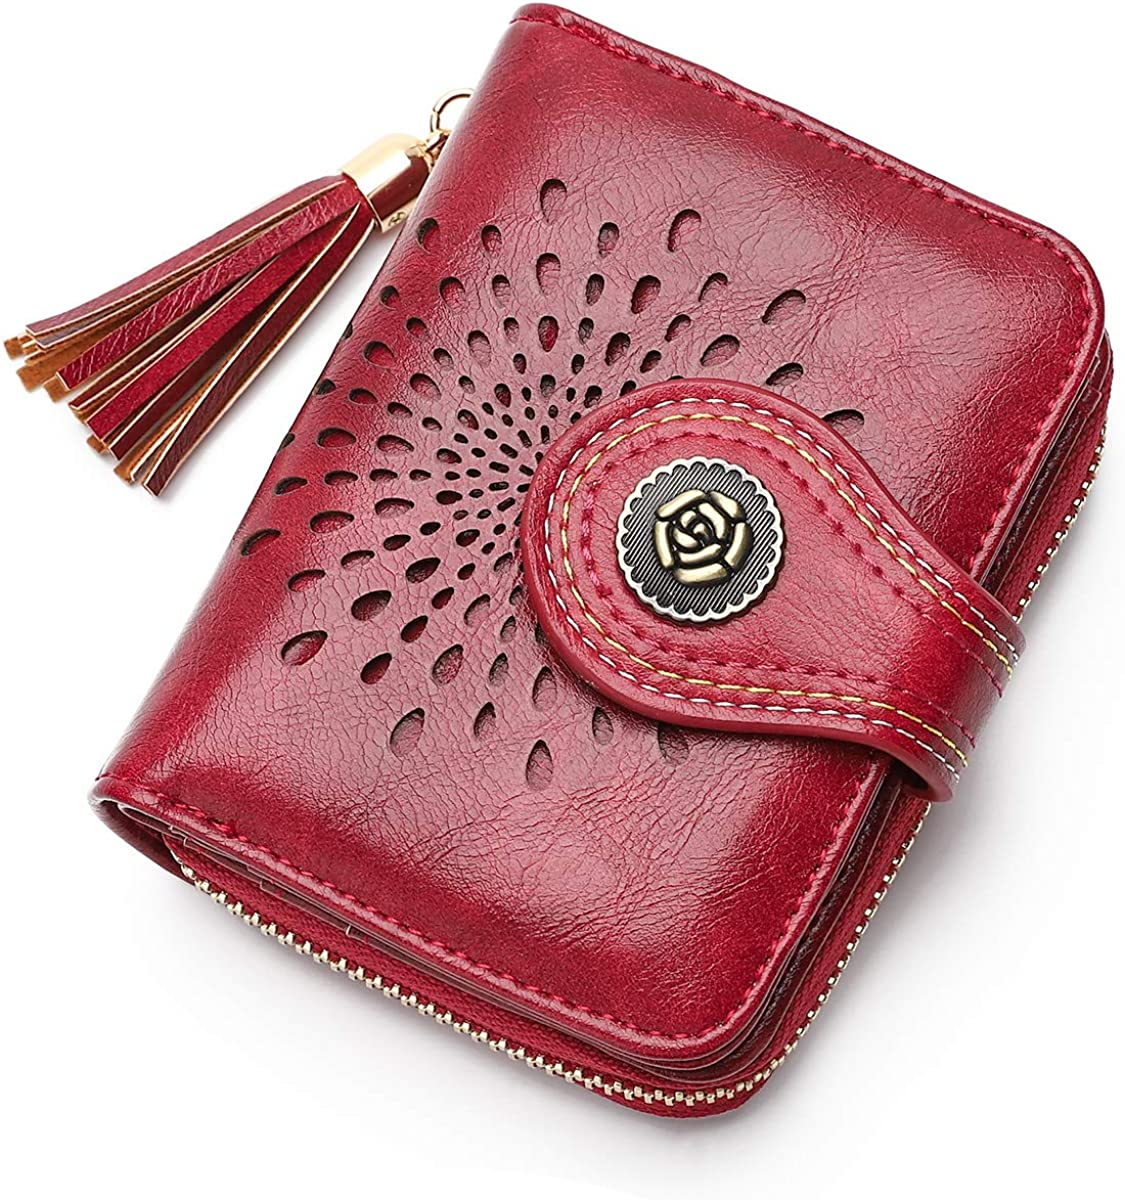 Small Women New mail order Sale price Wallet RFID Blocking Leather PU Bifold Walle Compact